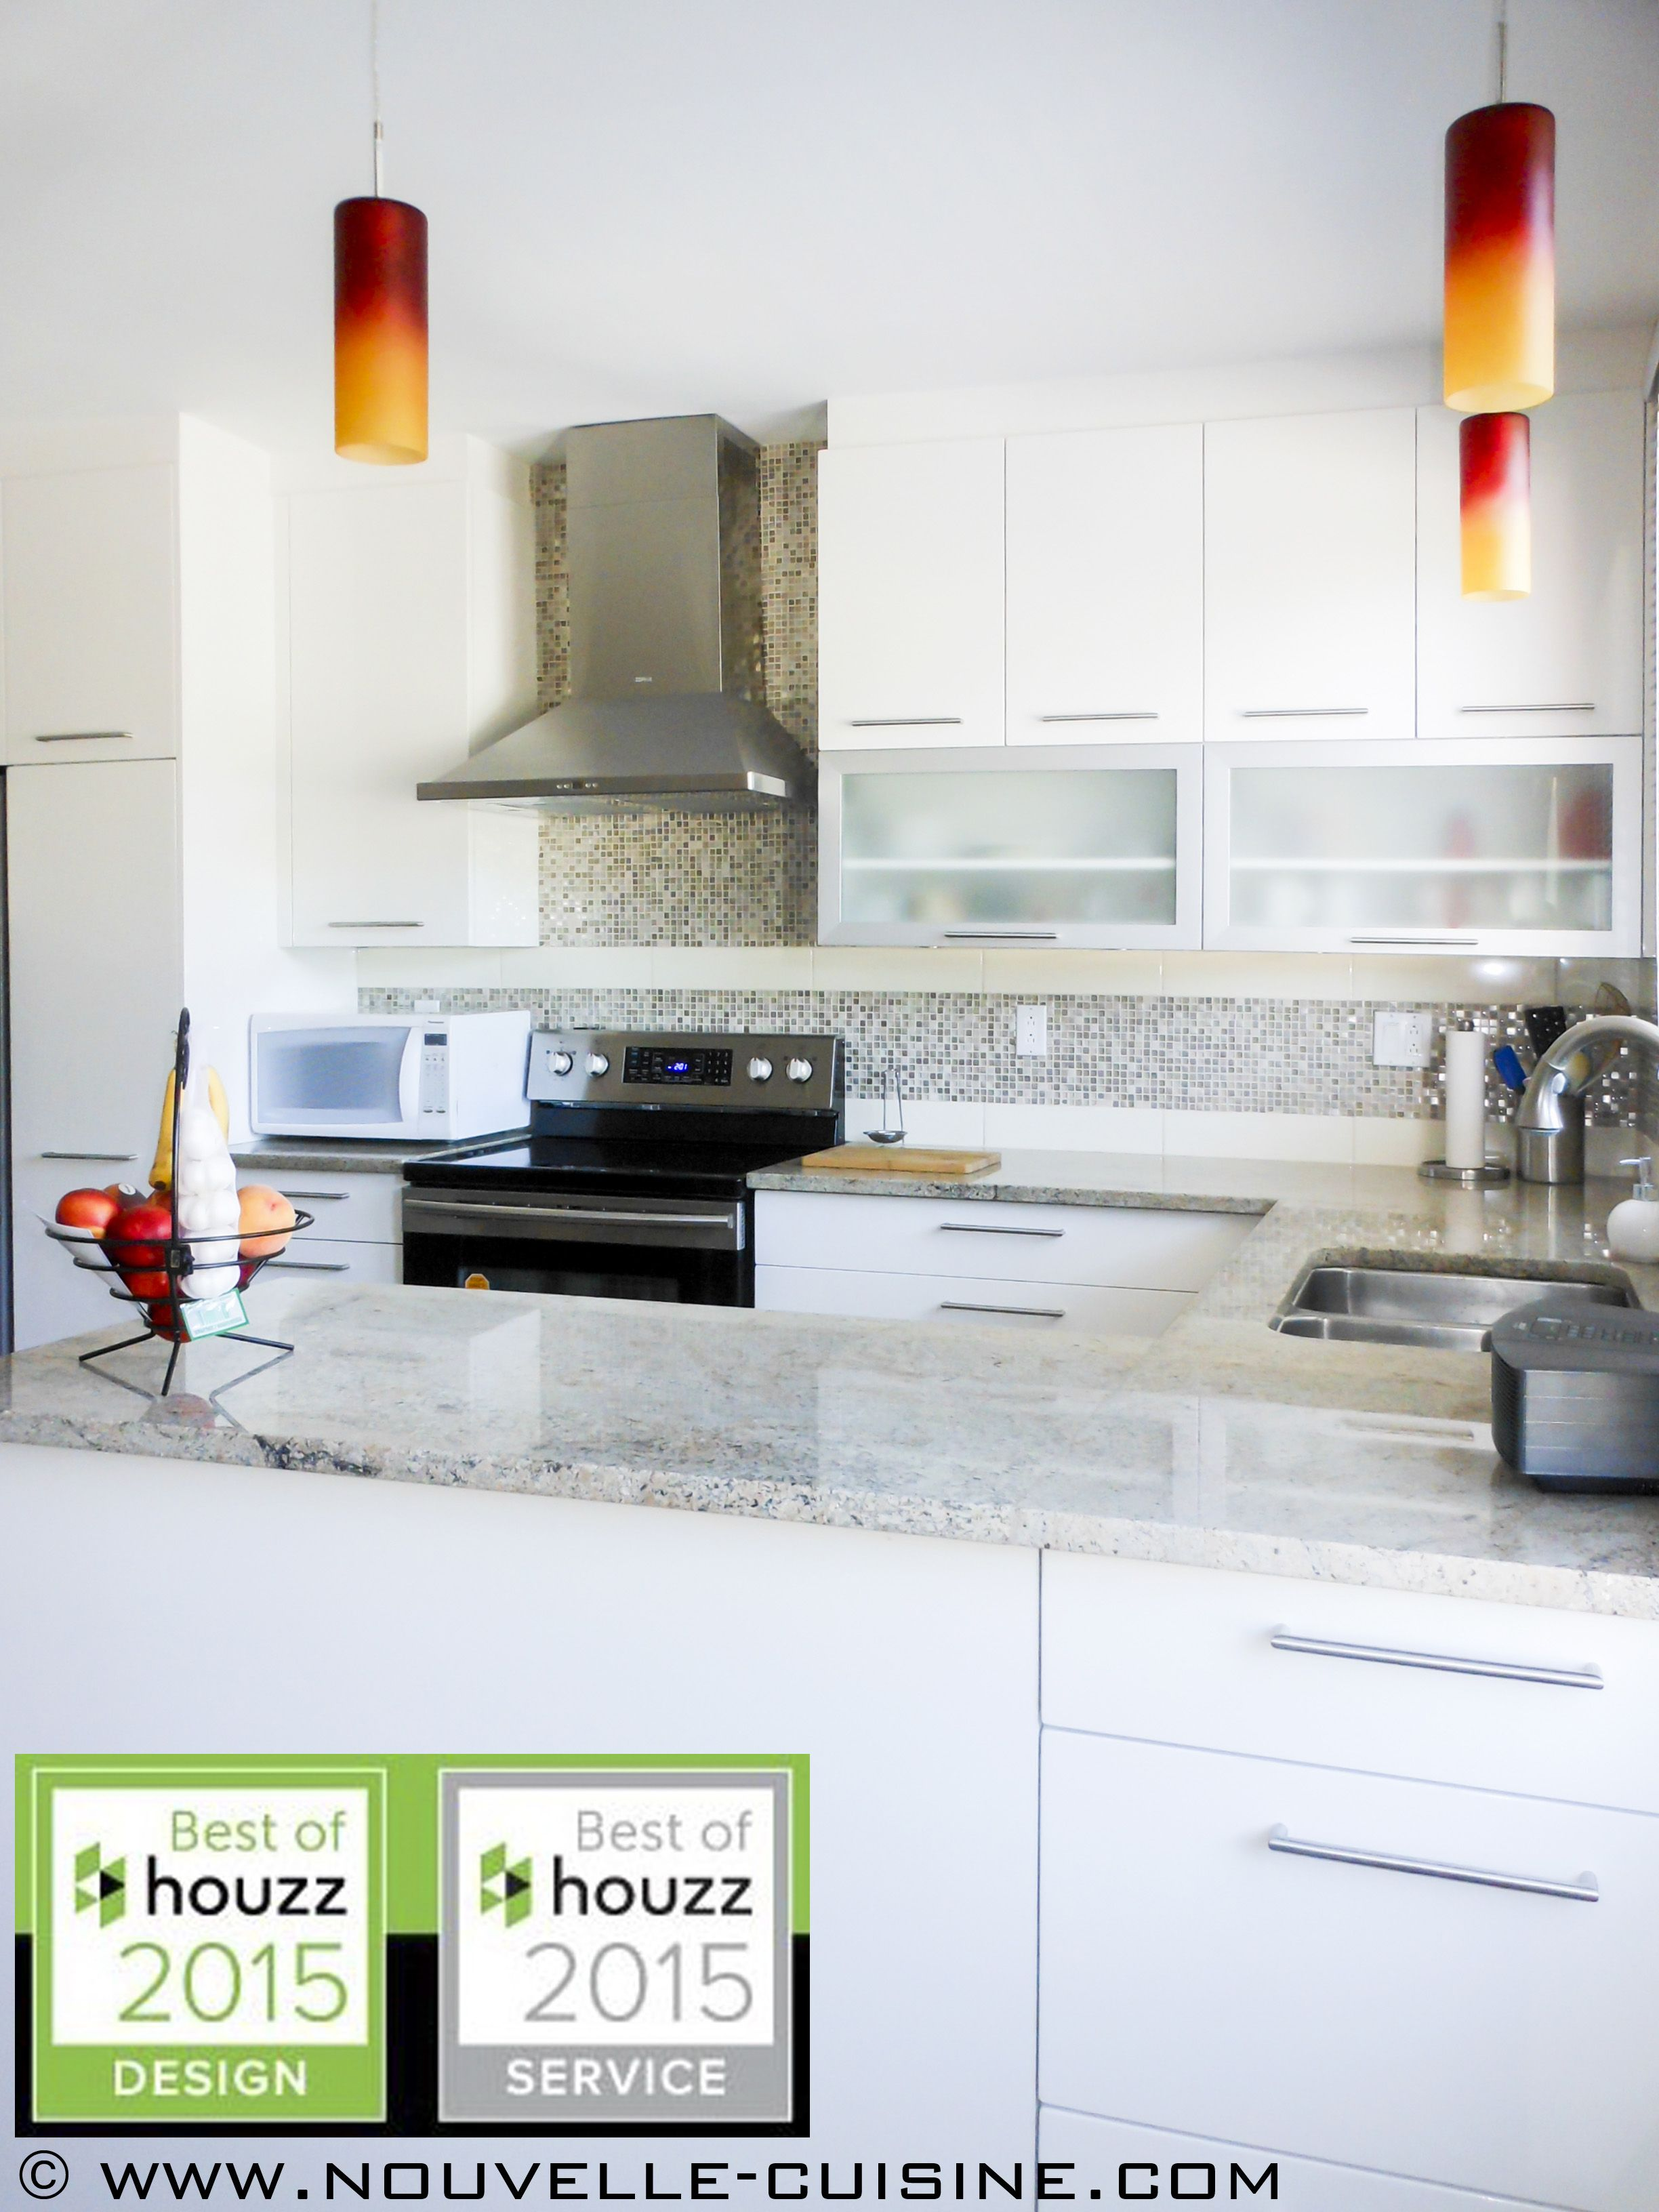 Modern Kitchen With White Polymer Cabinets And Granite Countertops. /  Cuisine Moderne Aux Armoires Blanches